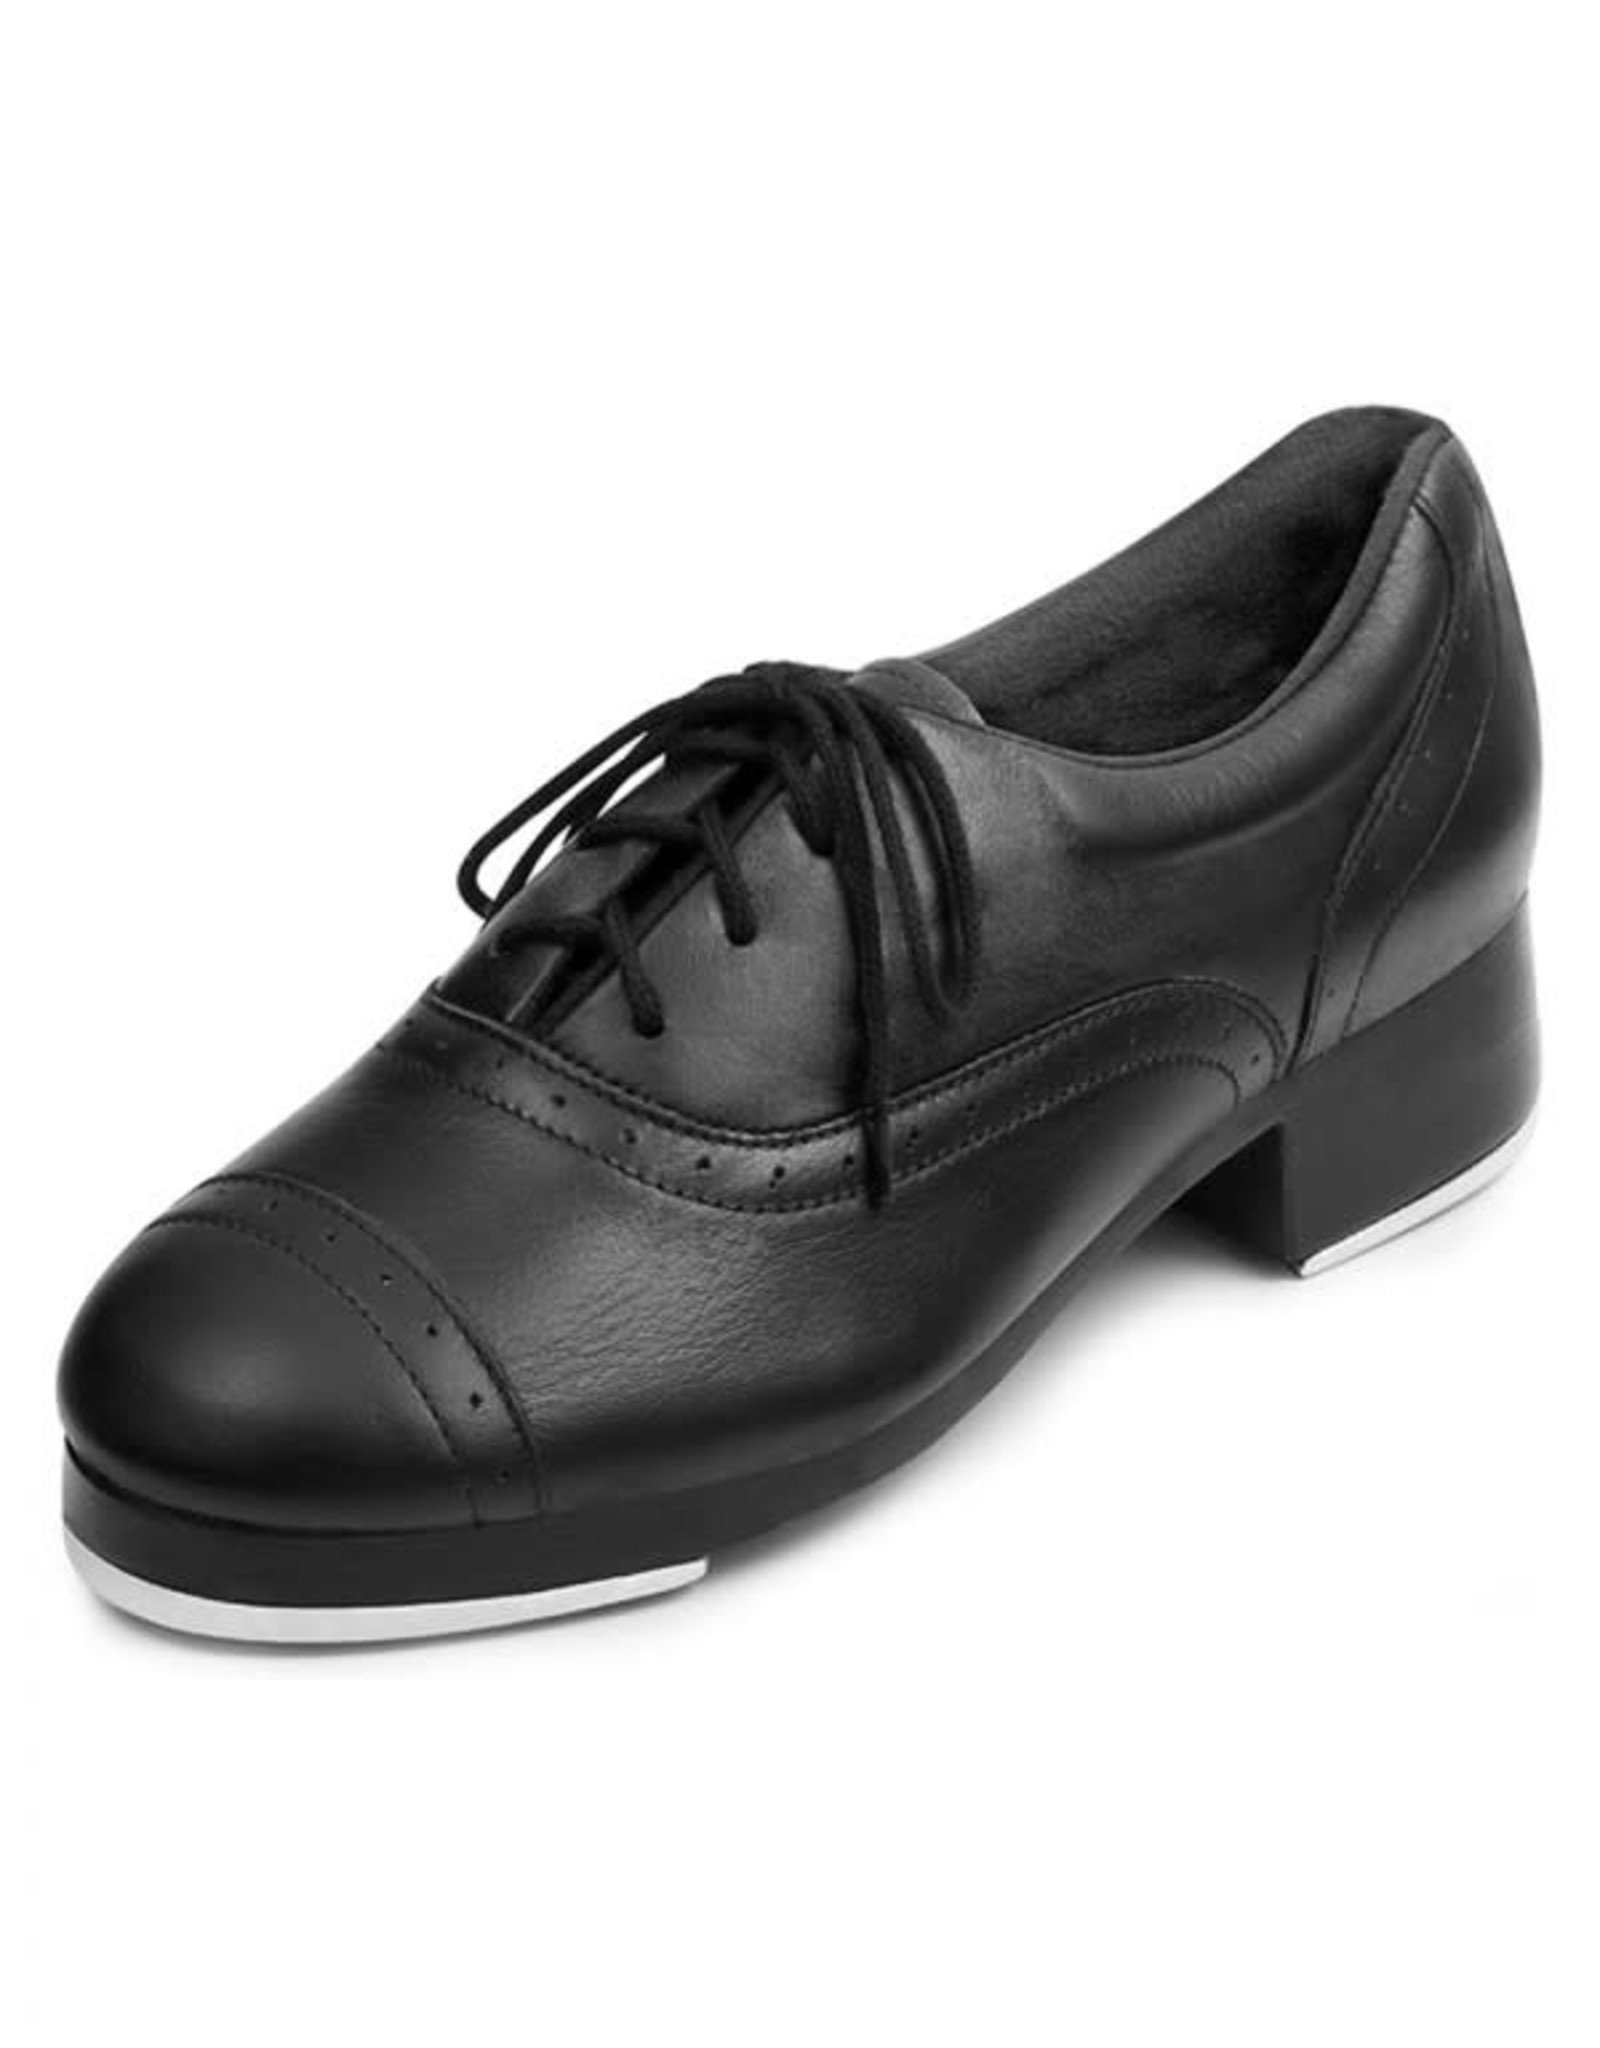 Bloch S0313L Jason Samuels Smith Tap Shoe